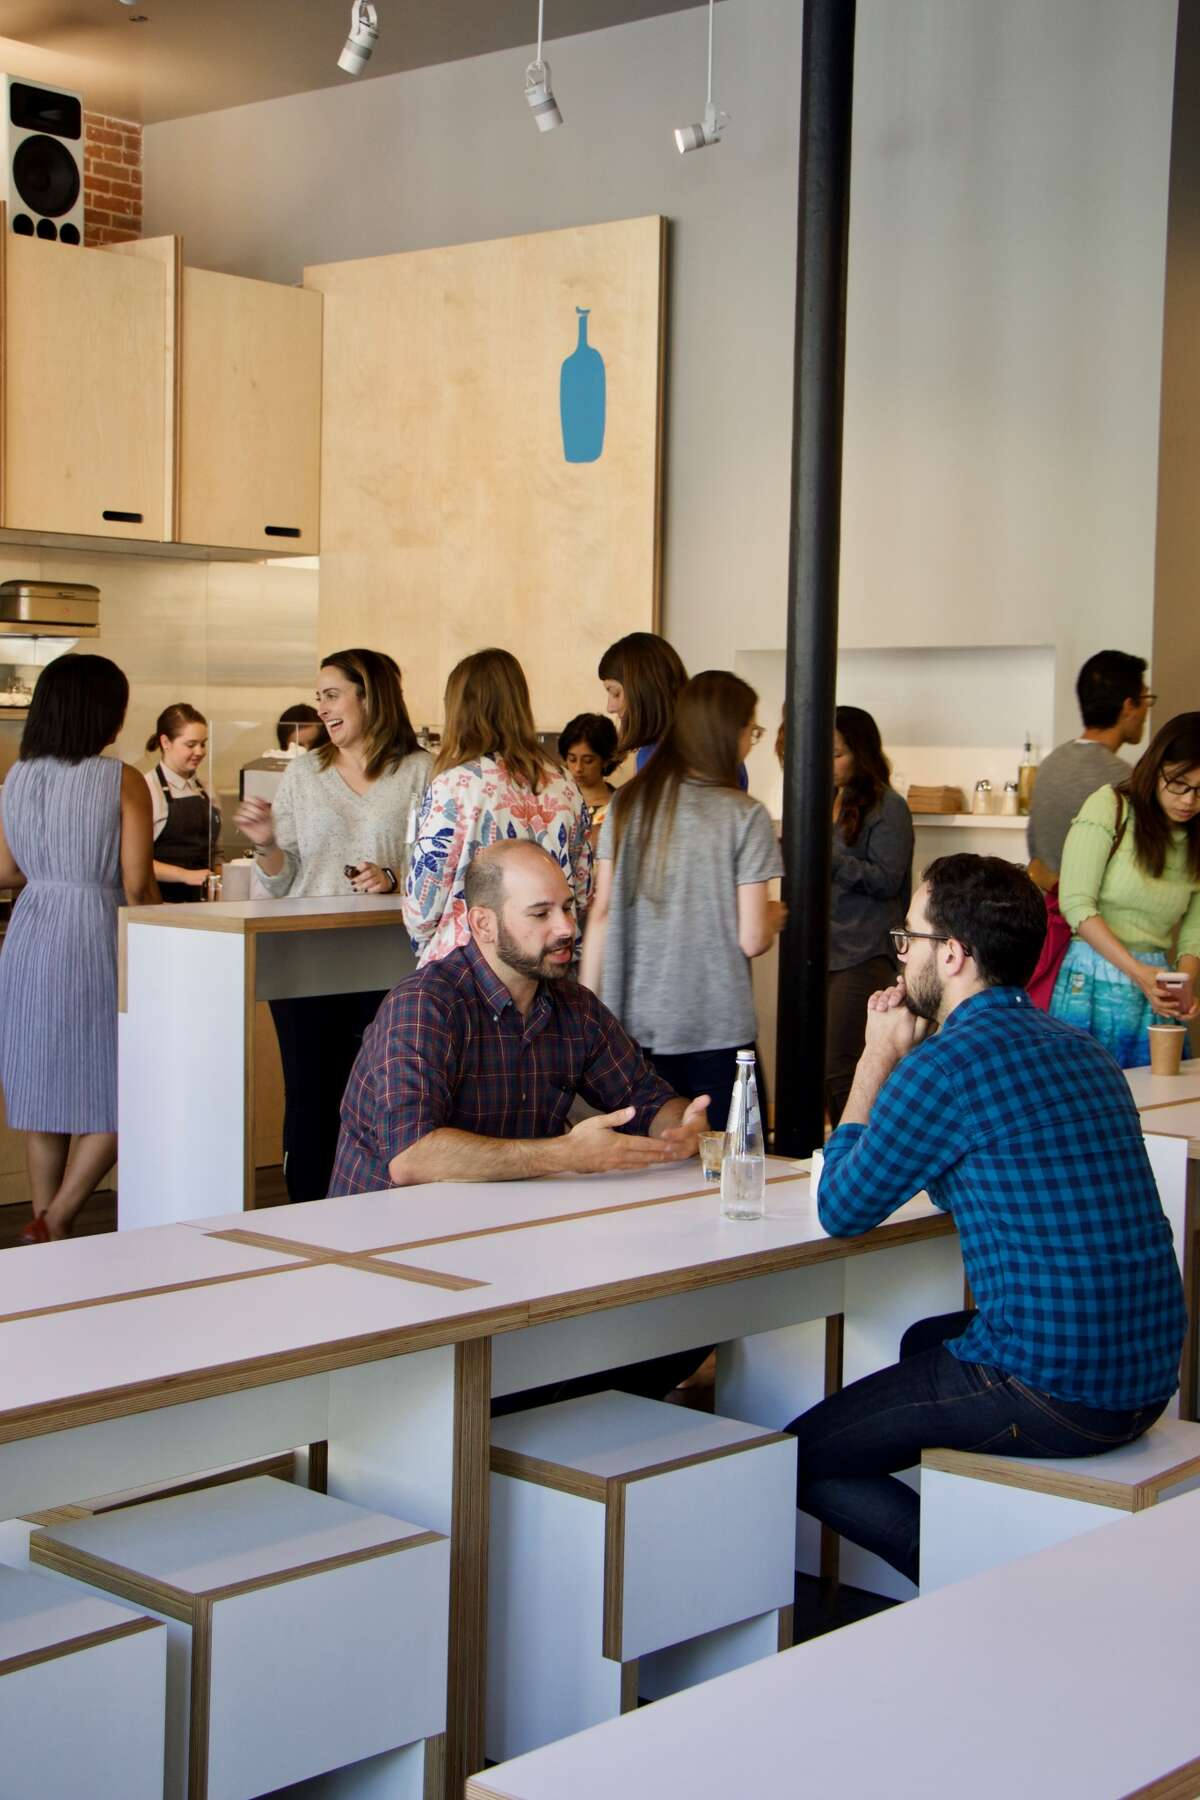 Blue Bottle's new cafe/training facility opens in Old Oakland on June 23 at 480 9th St. Photo via Blue Bottle.